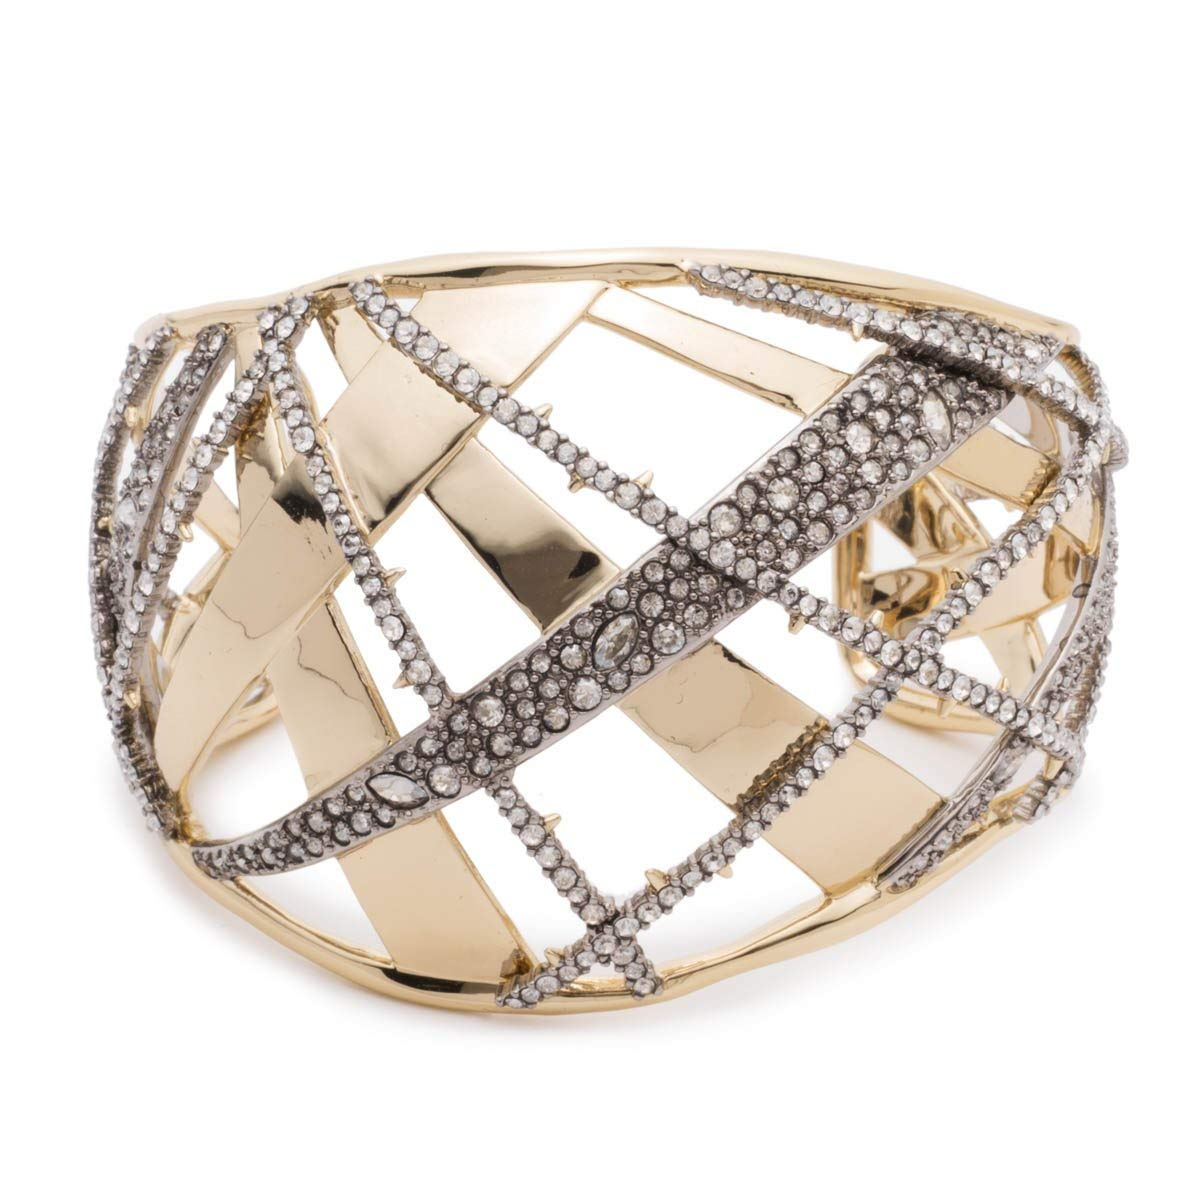 Alexis Bittar Women's Crystal Encrusted Medium Plaid Cuff Bracelet